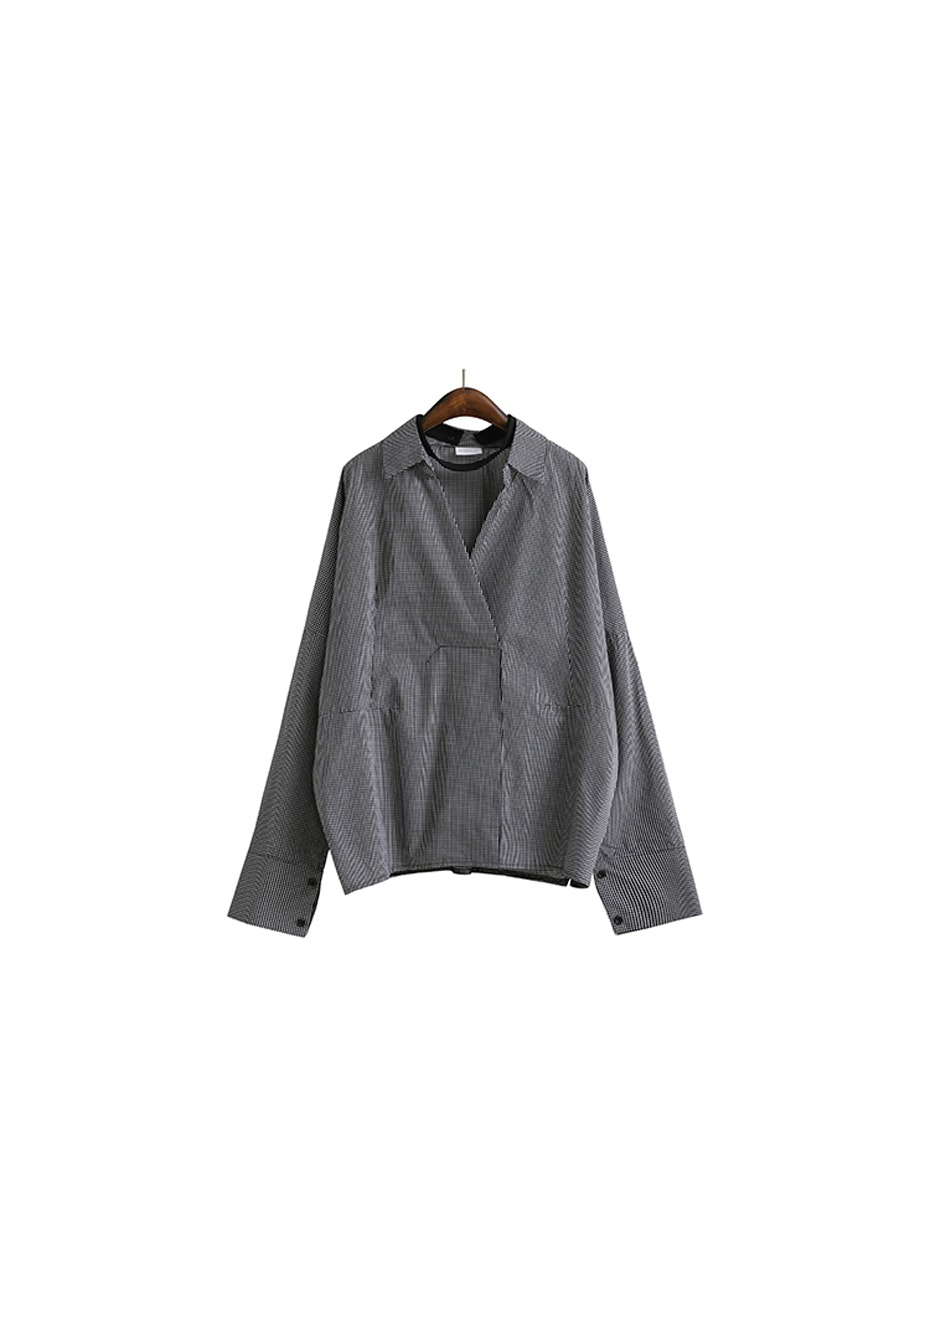 Cathy Shirt  - Dark Grey  Check